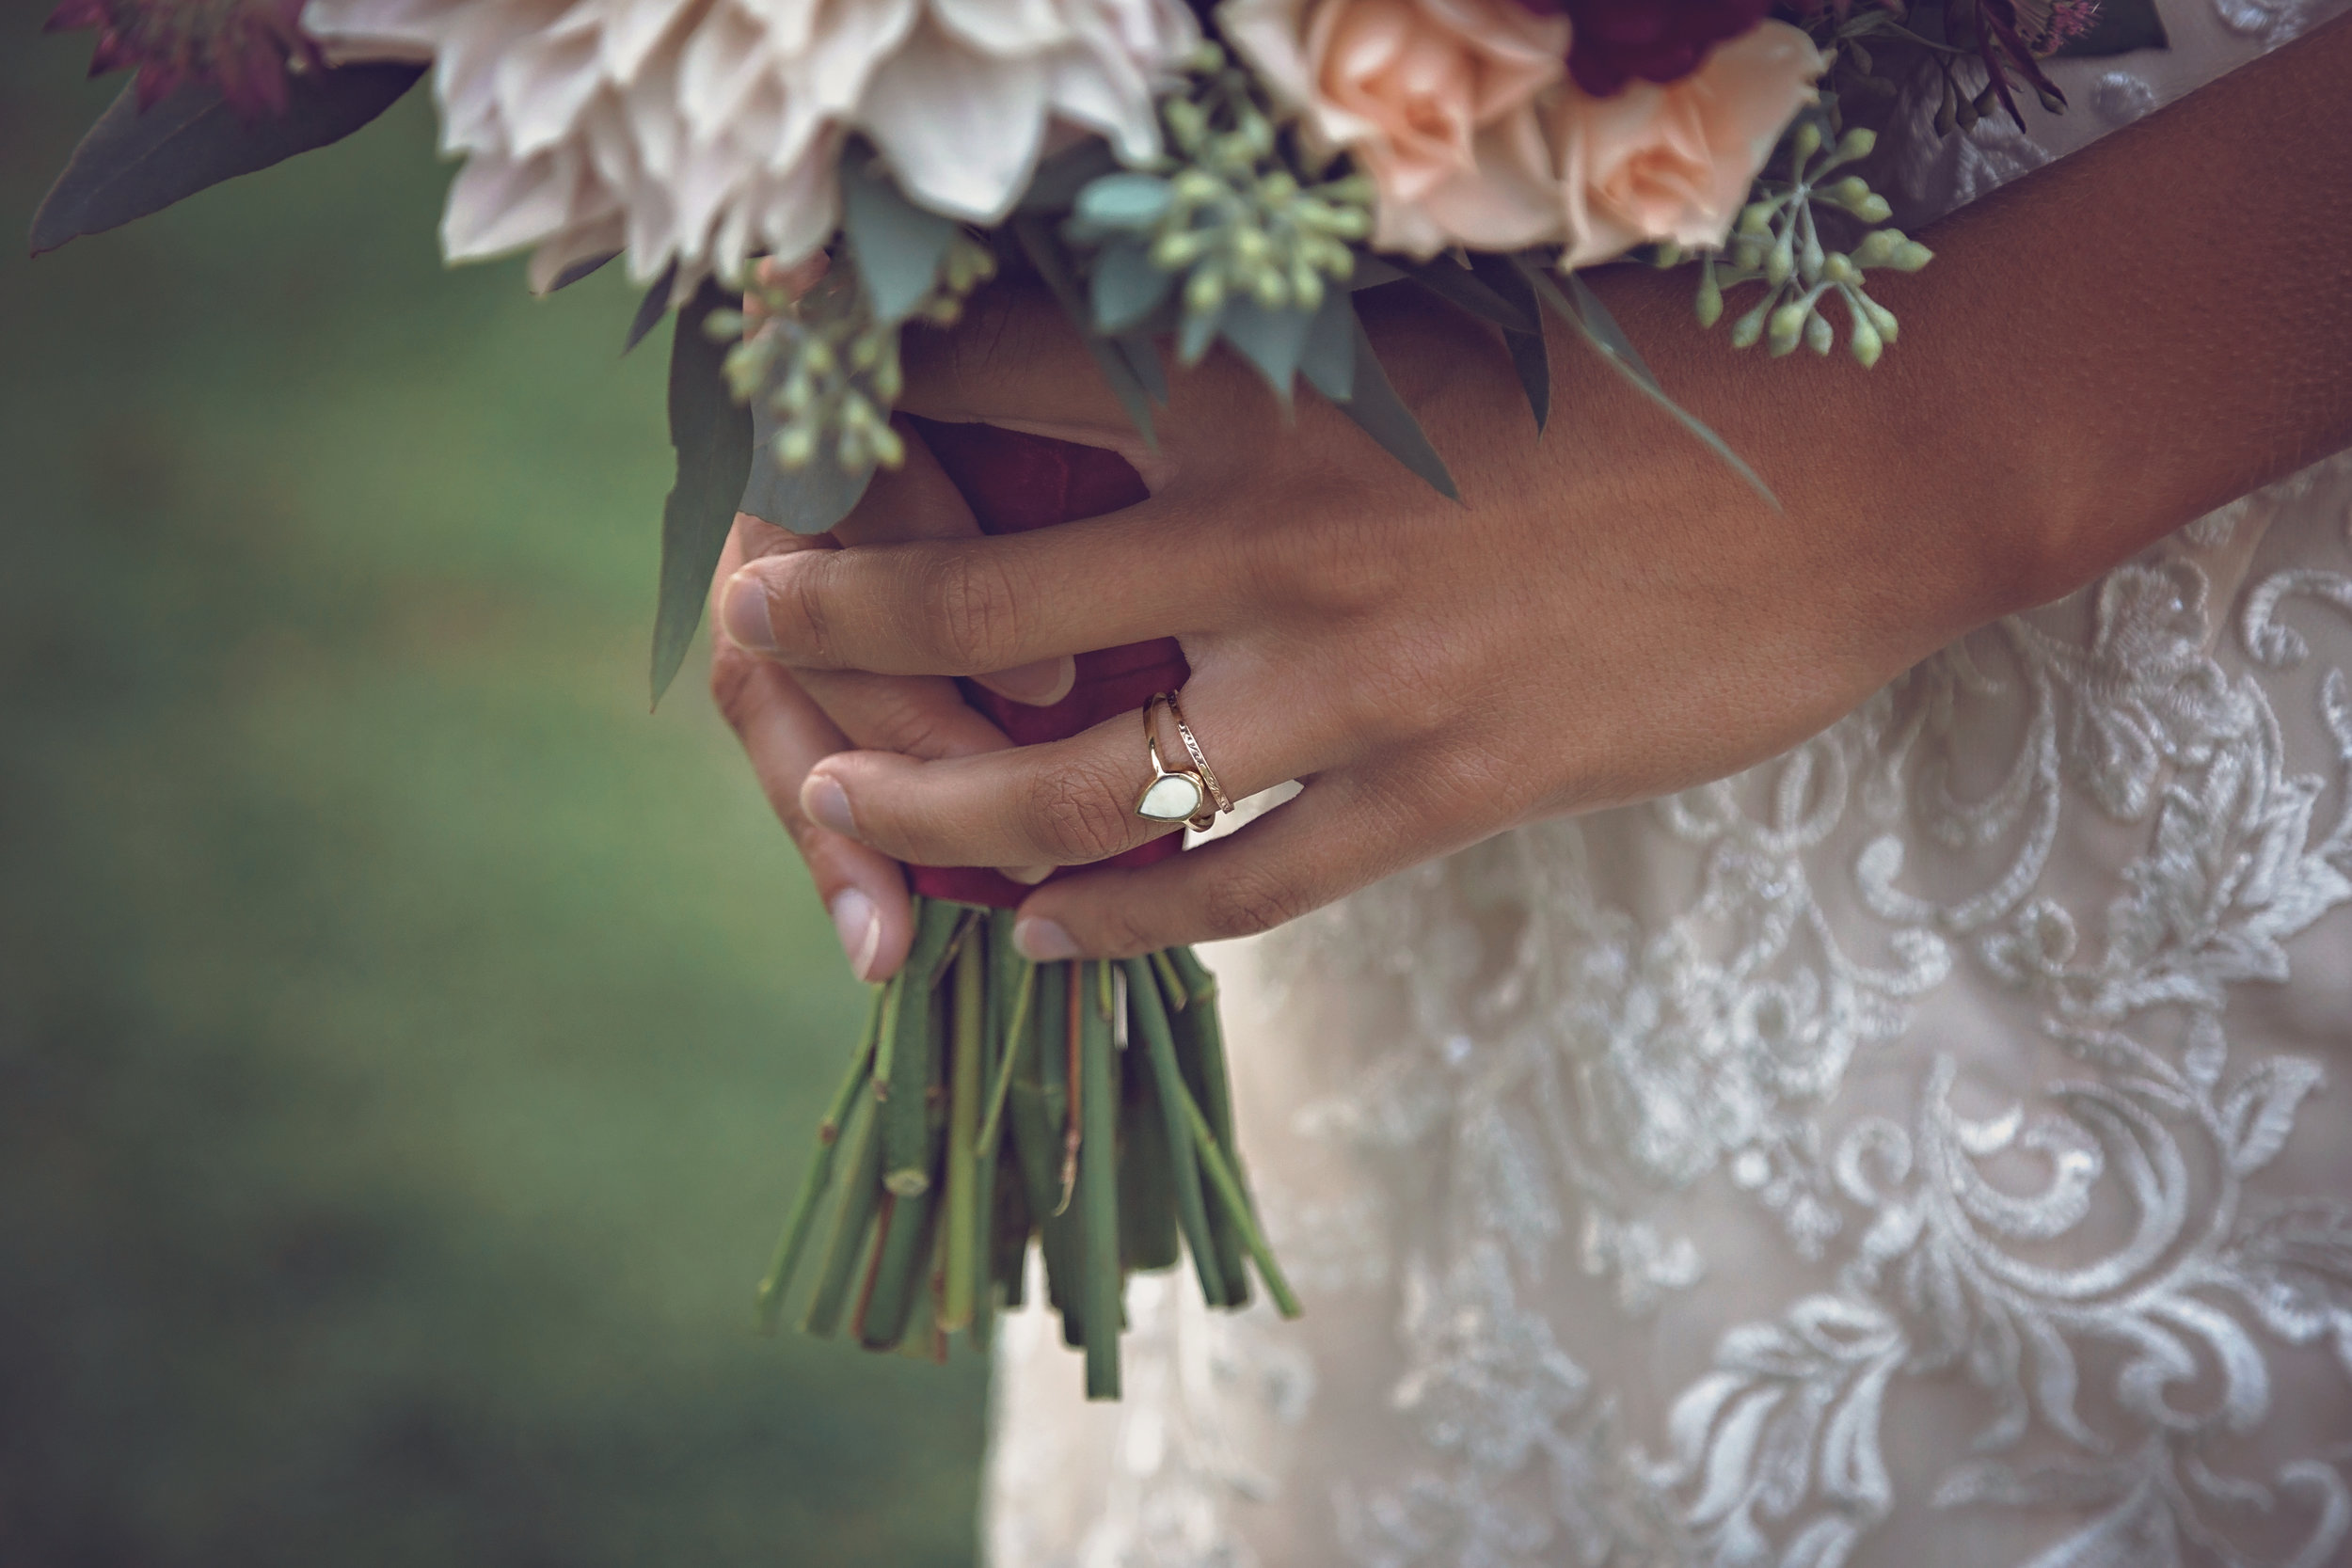 MINNESOTA WEDDING PHOTOGRAPHER   l. sHOFF   INSPIRE BRIDAL BOUTIQUE   INTUITION WEDDINGS BY ID PHOTOGRAPHY